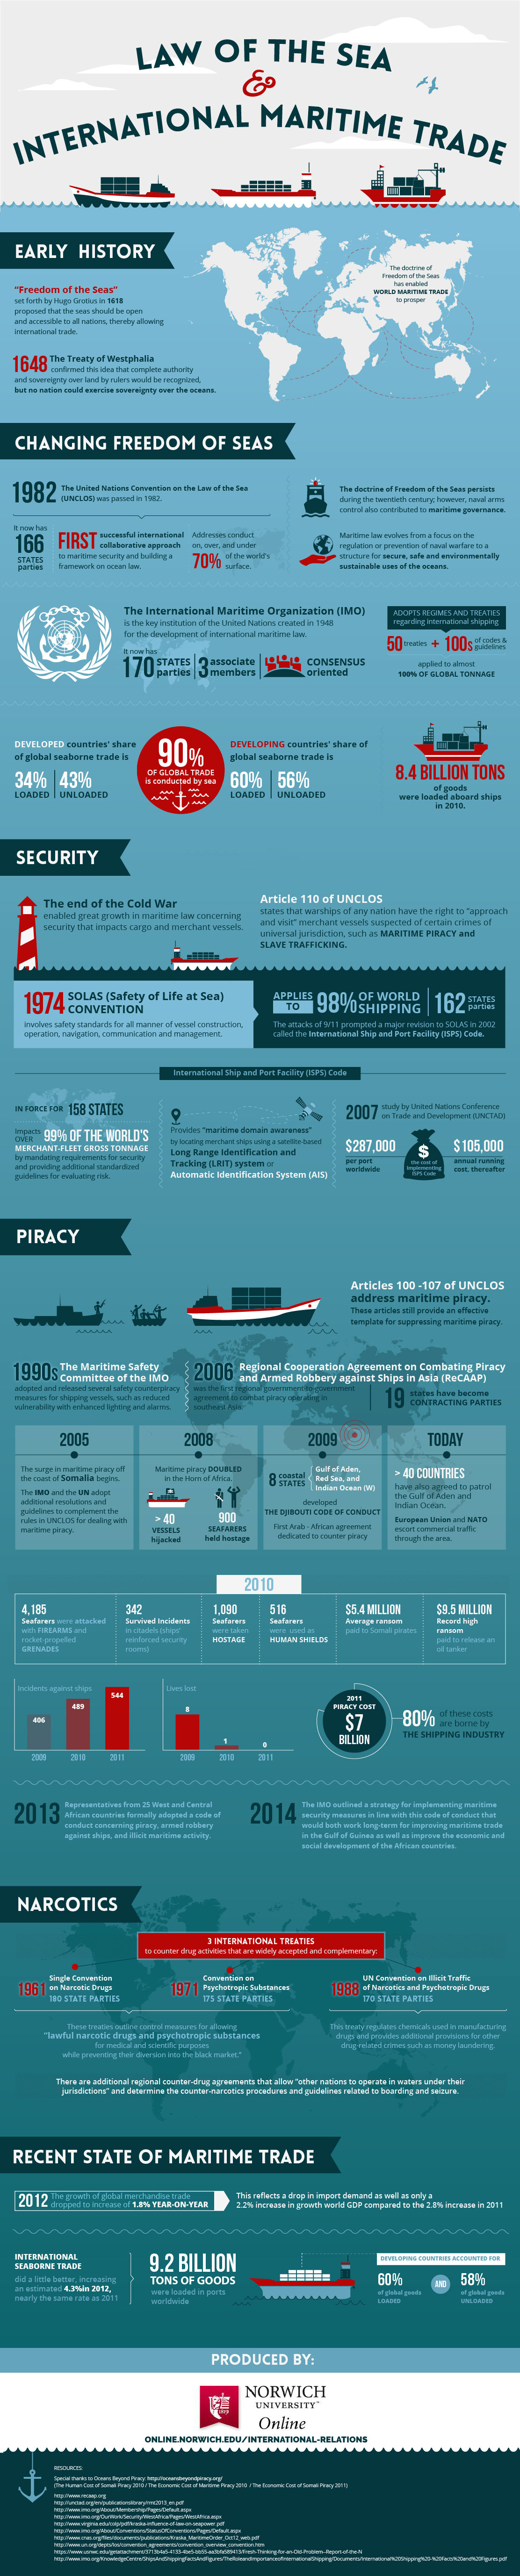 infographic on maritime trade